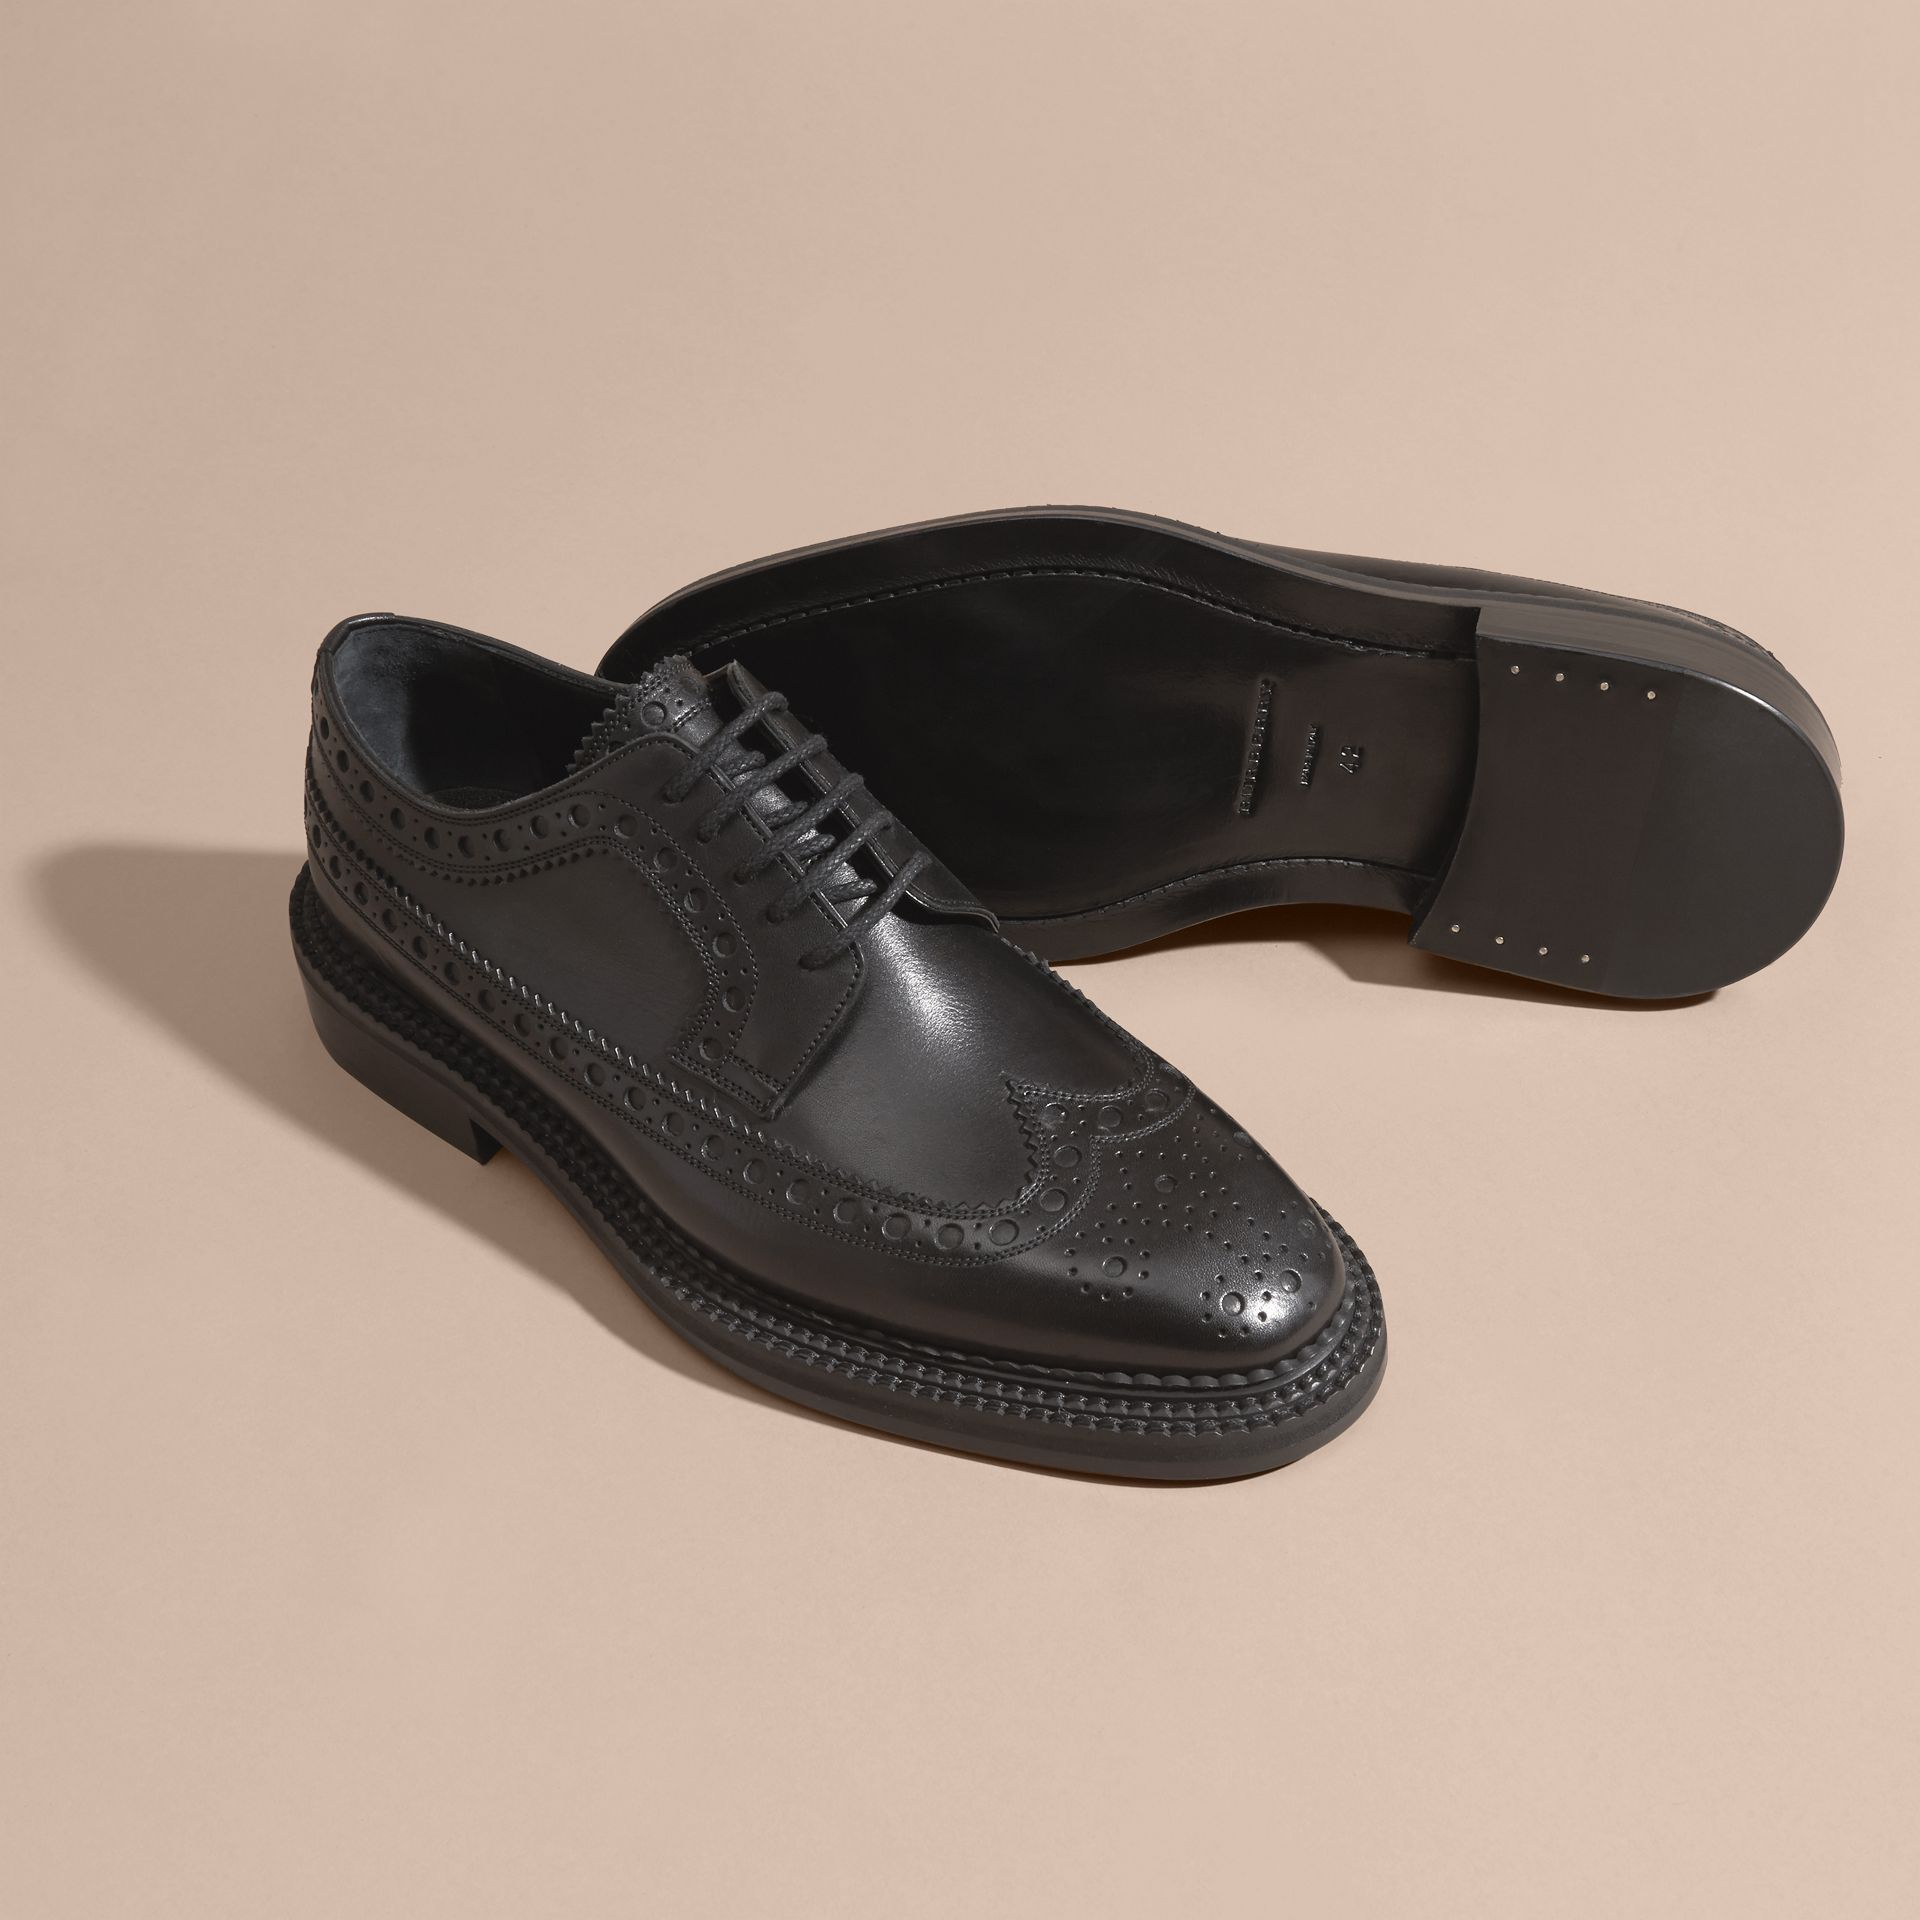 Leather Wingtip Brogues in Black - Men | Burberry Canada - gallery image 5